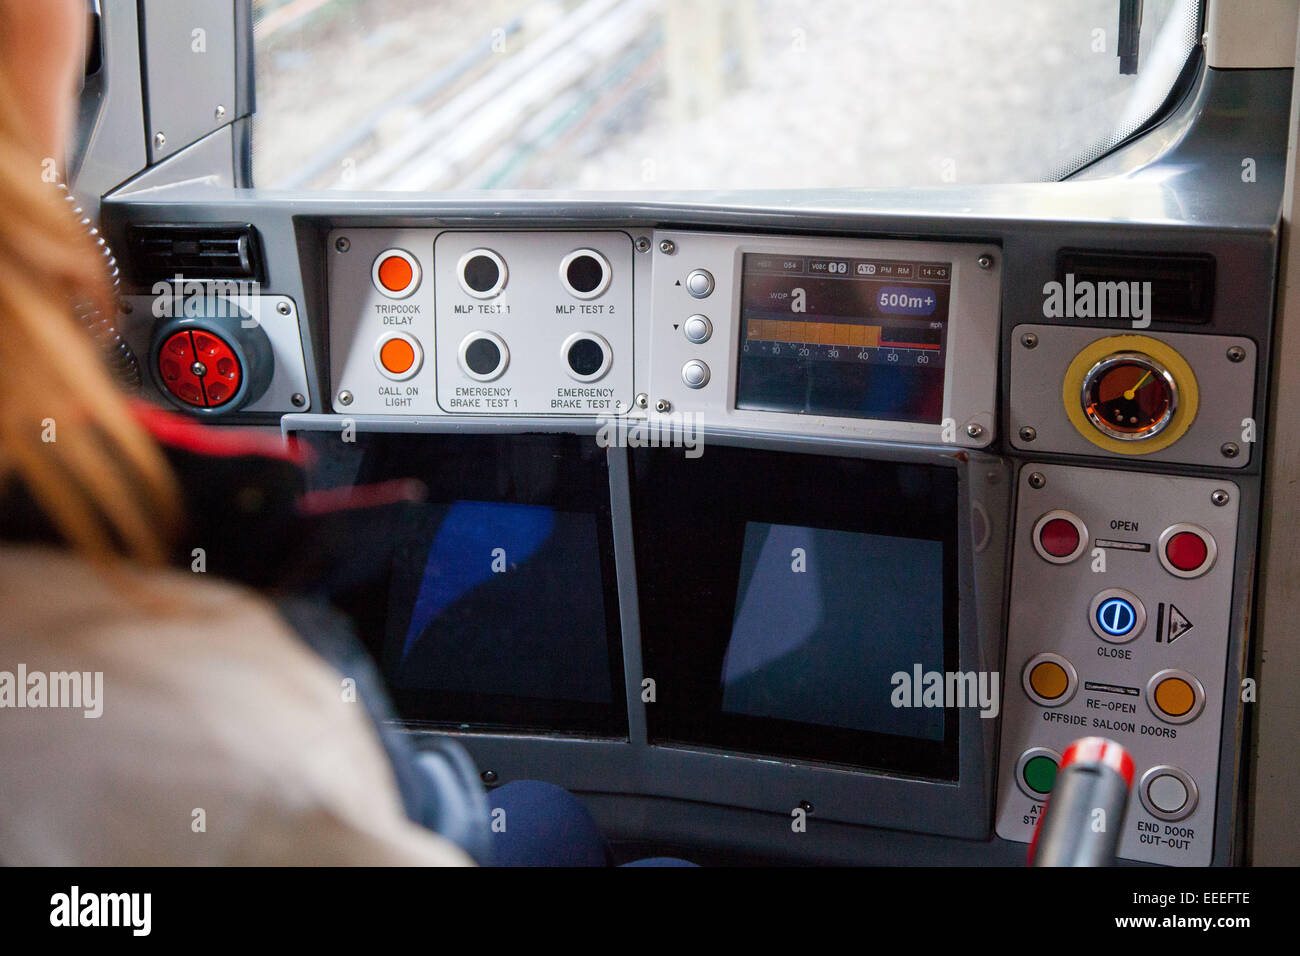 Driver controls on a London Underground train - Stock Image